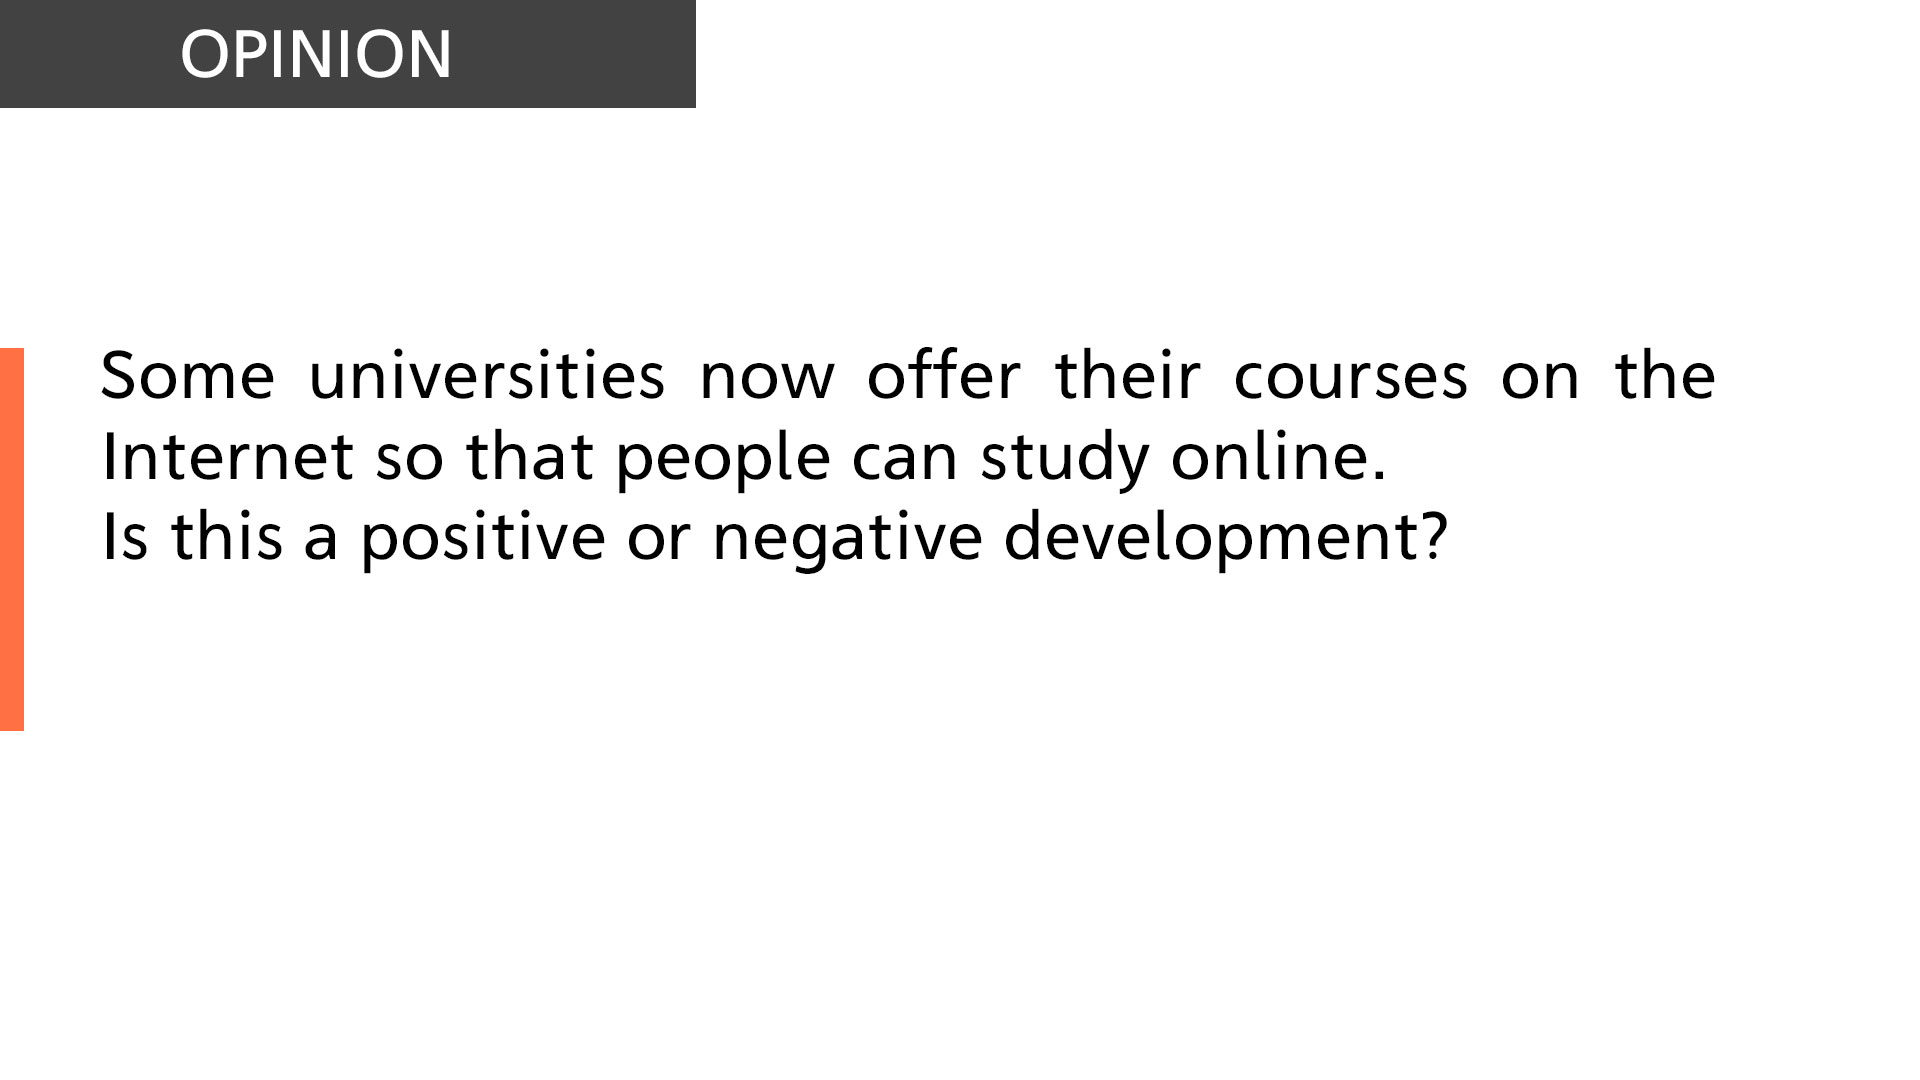 universities now offer their courses on the Internet